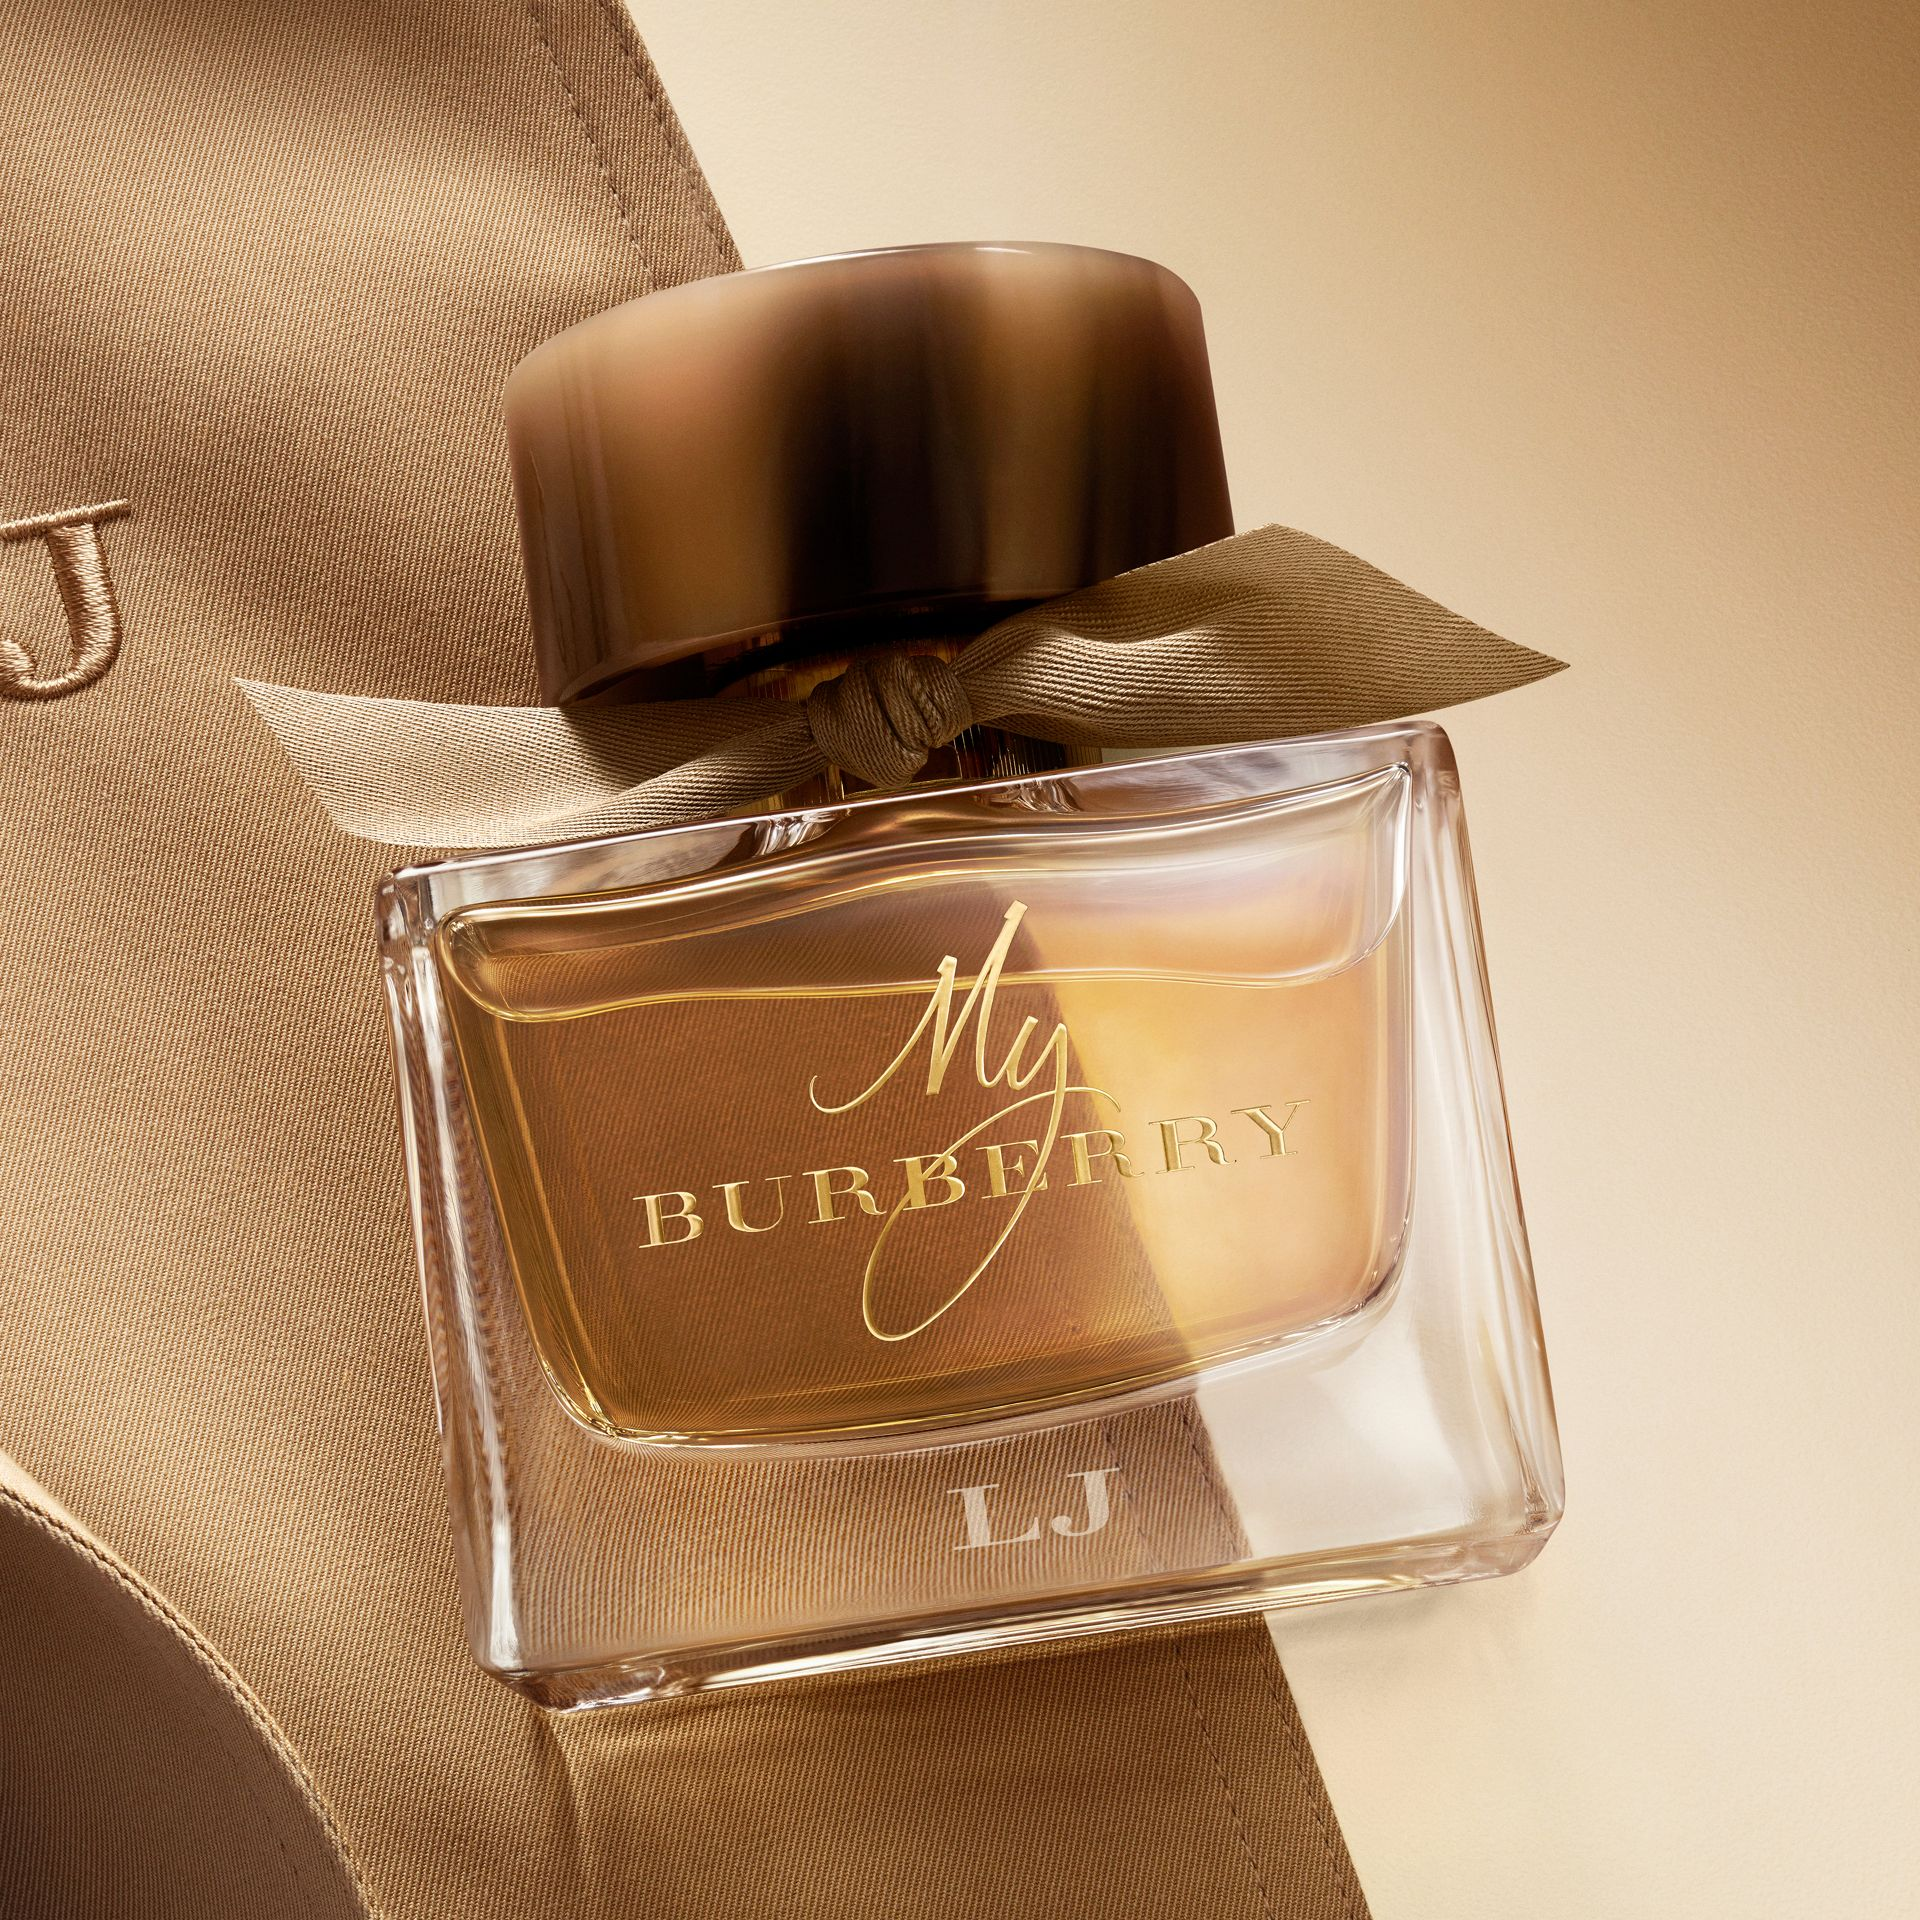 My Burberry Eau de Parfum 50ml - gallery image 5